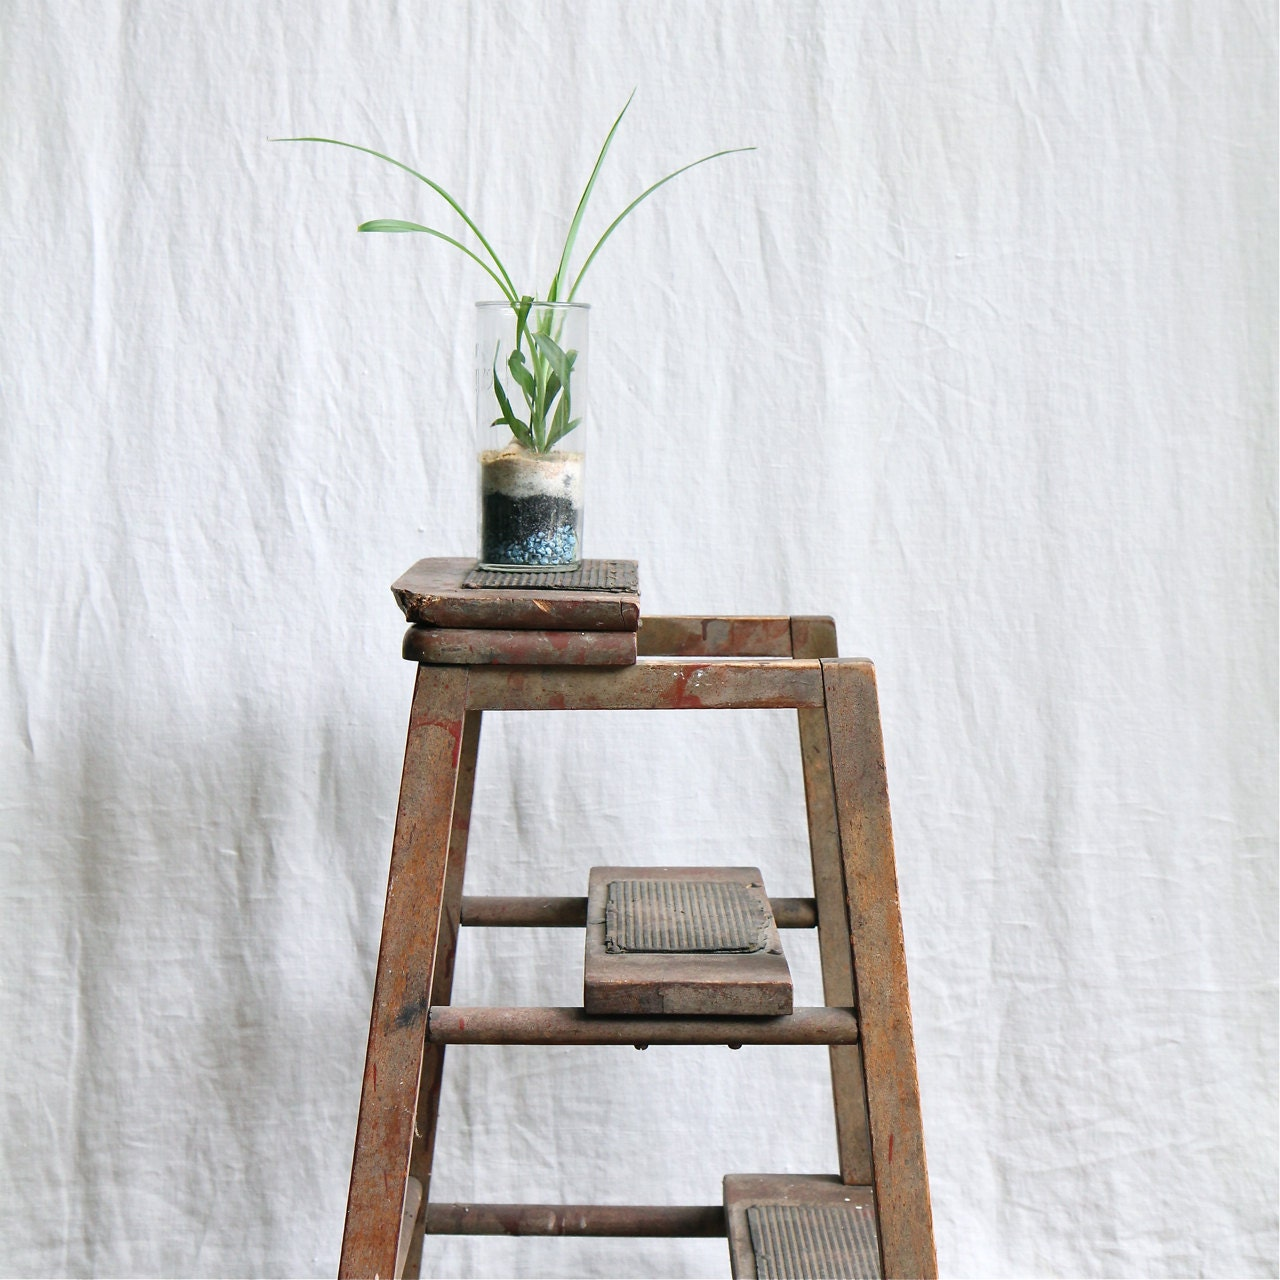 vintage industrial kitchen step stool by ethanollie on etsy